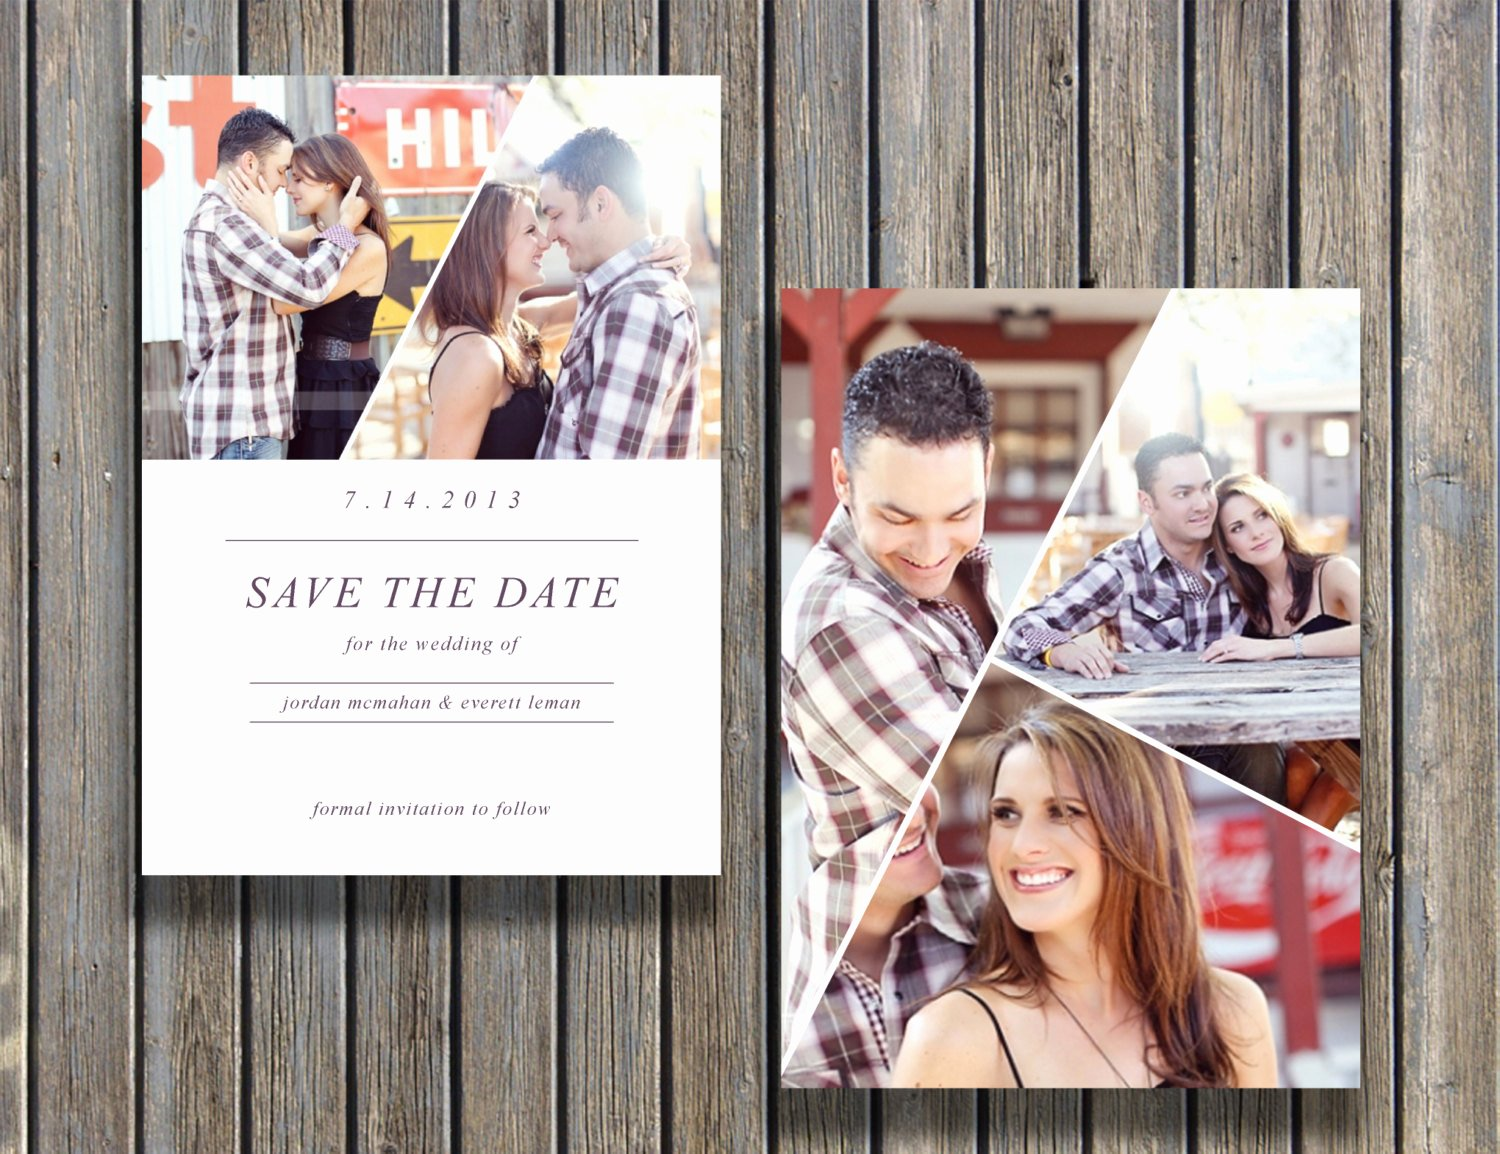 Save the Date Templates Photoshop Best Of Save the Date Template for Graphers and Shop Users